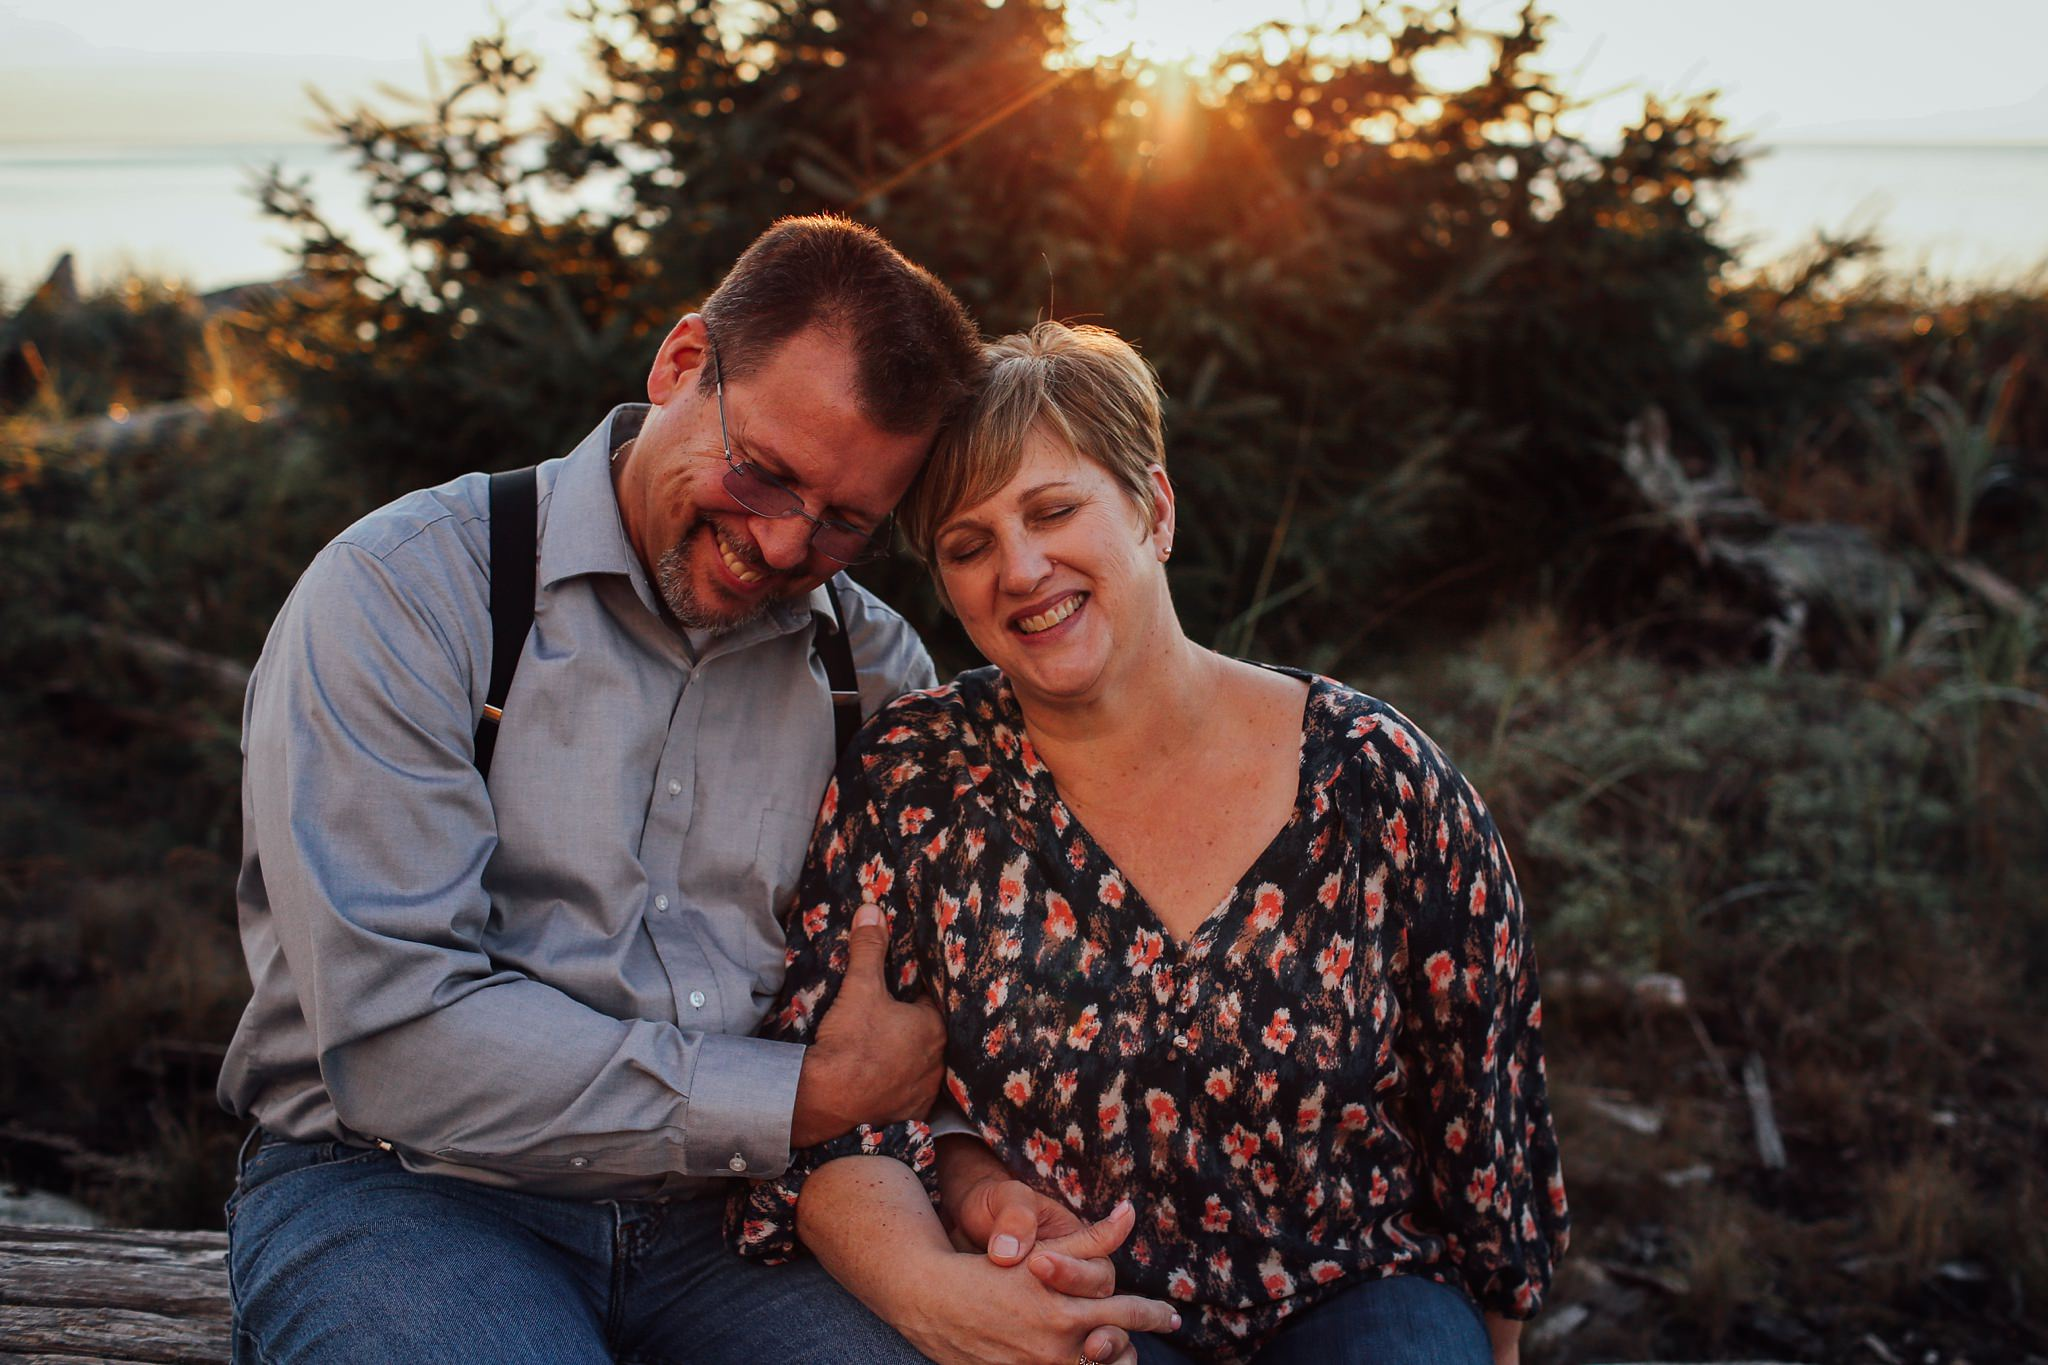 Whidbey-Island-Family-Photographer-Kara-Chappell-Photography_1396.jpg